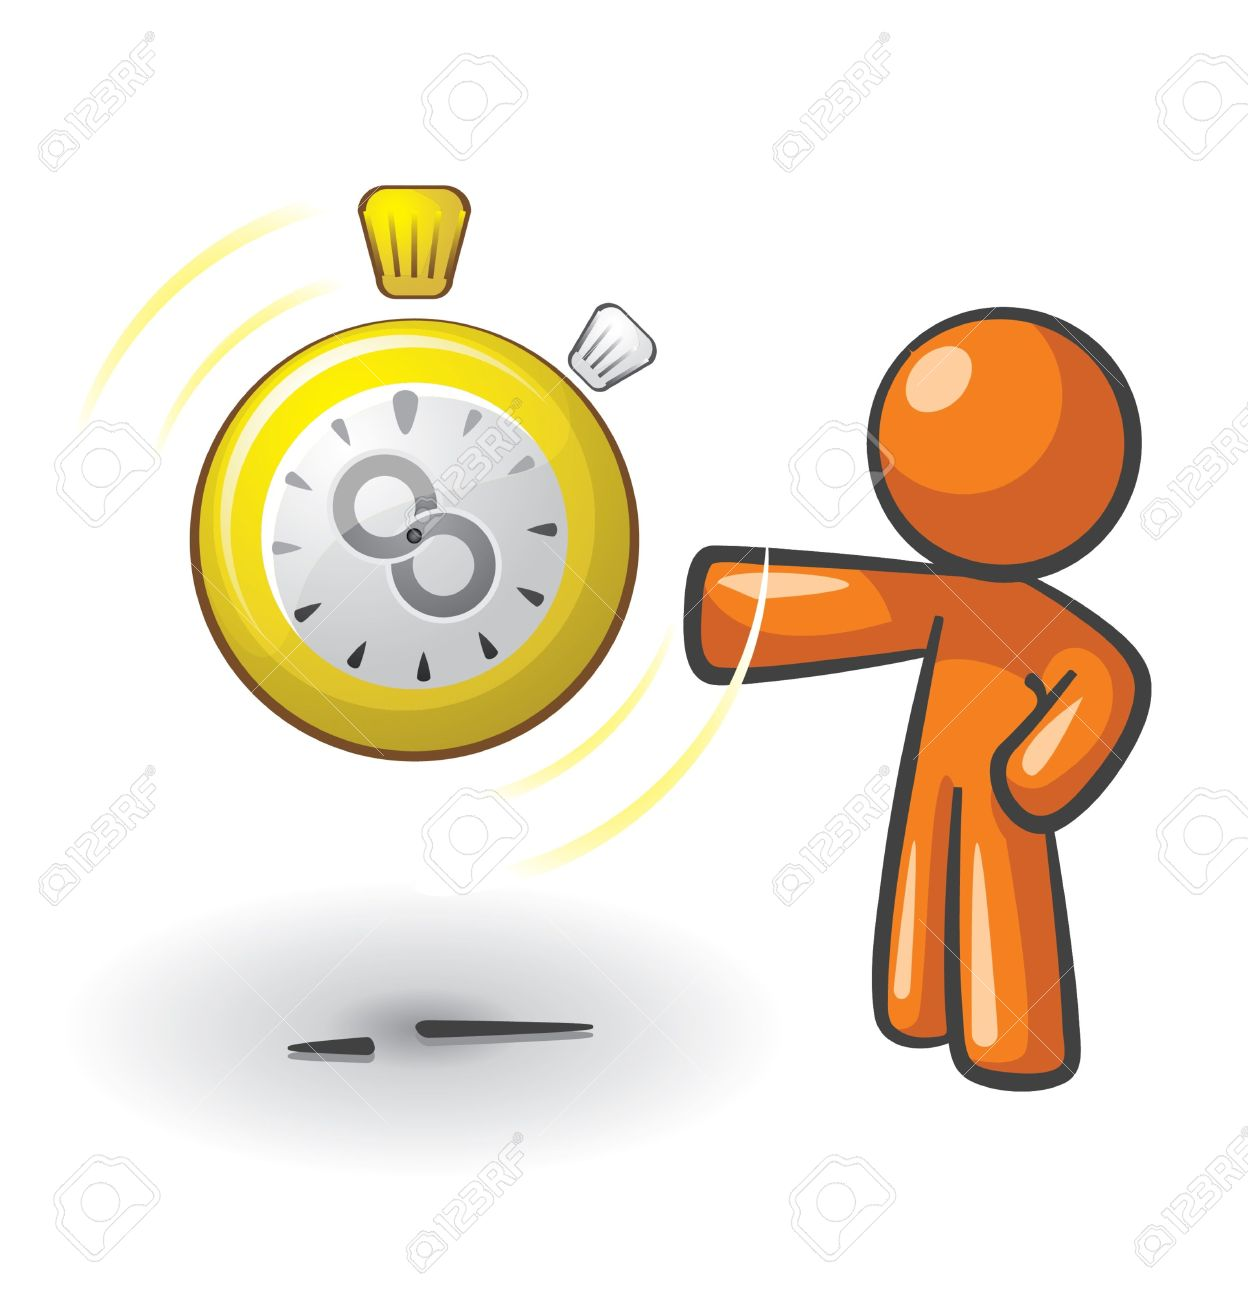 Clock man clipart.